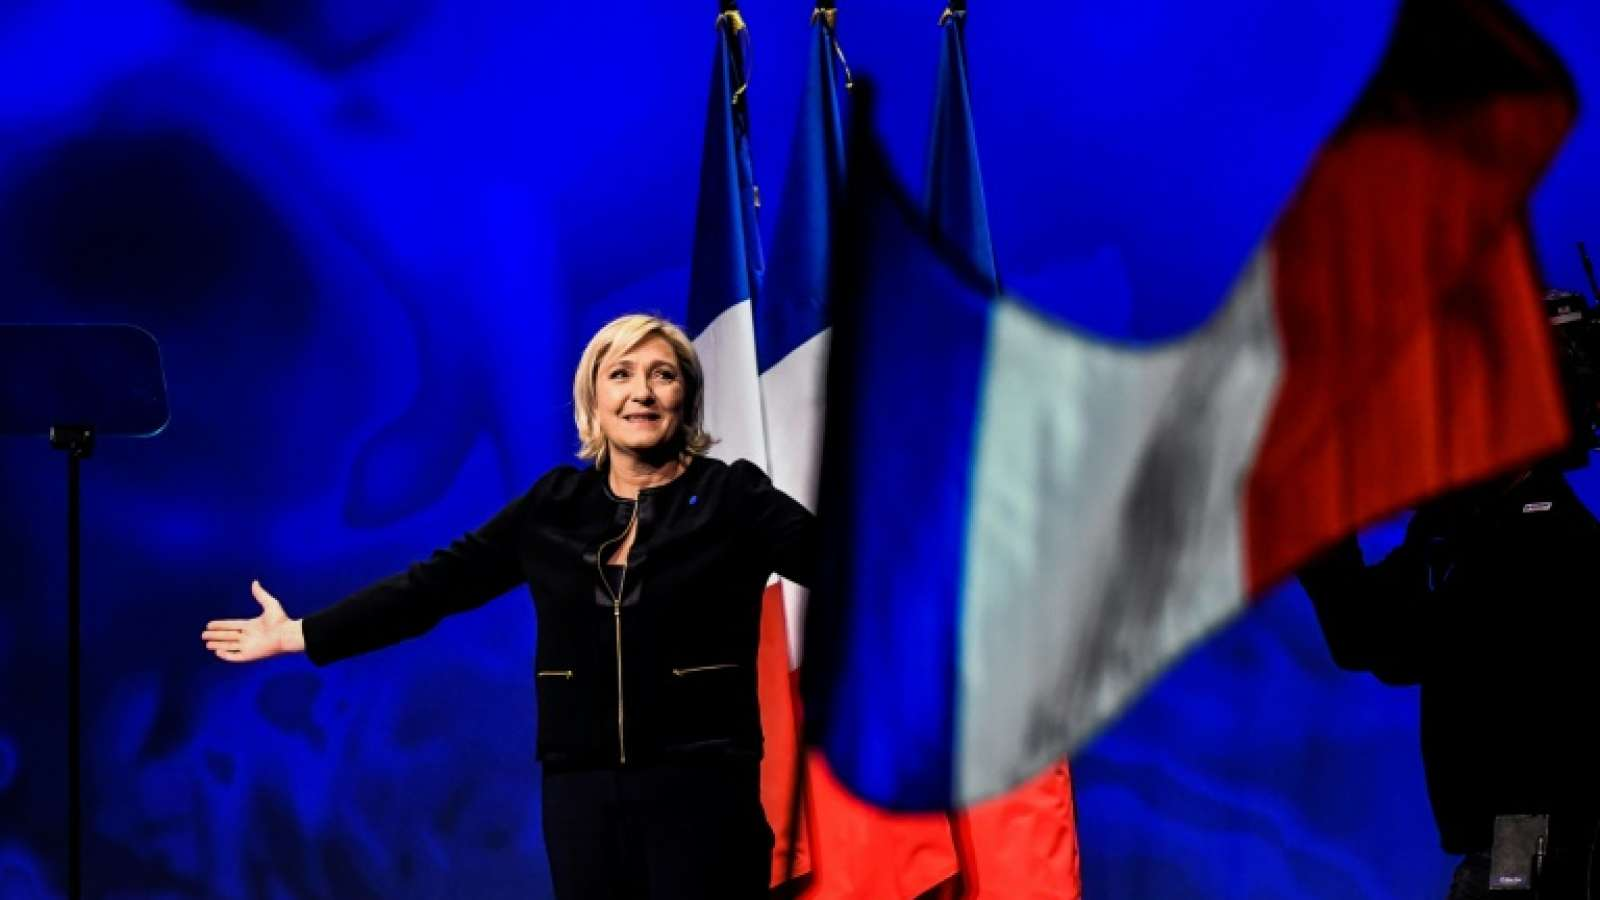 Marine Le Pen refuses police interview over funding claims